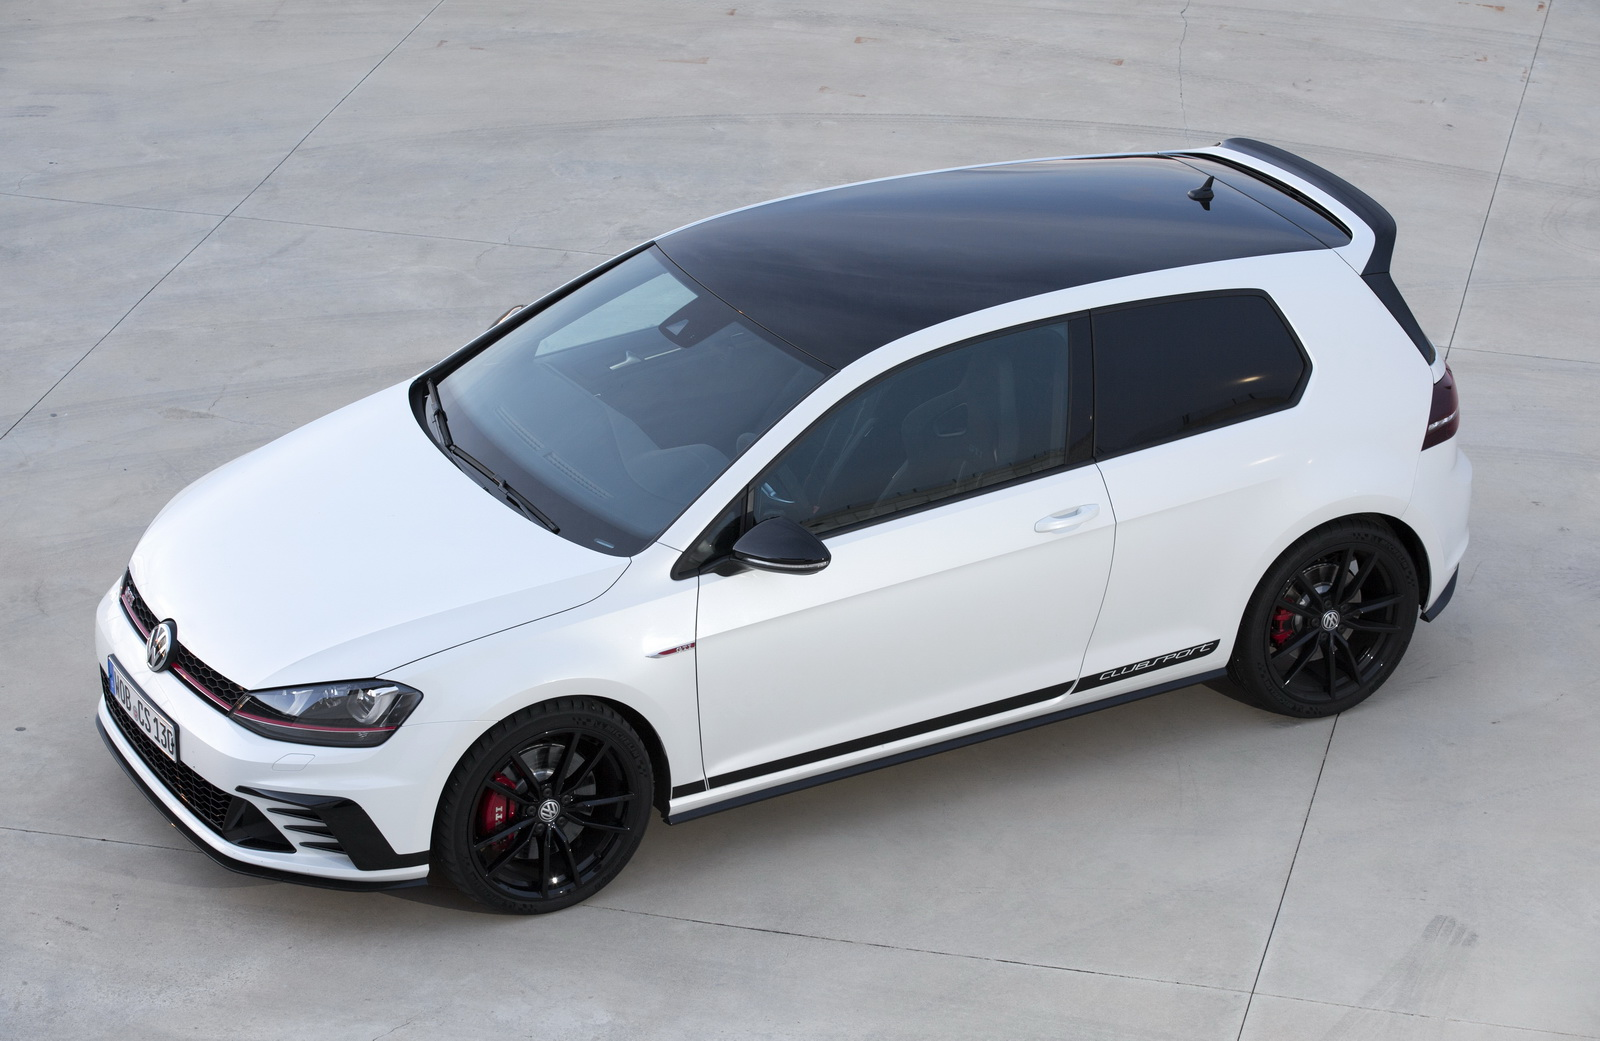 new vw golf gti clubsport arrives in the uk just in time for the 40th ann carscoops. Black Bedroom Furniture Sets. Home Design Ideas